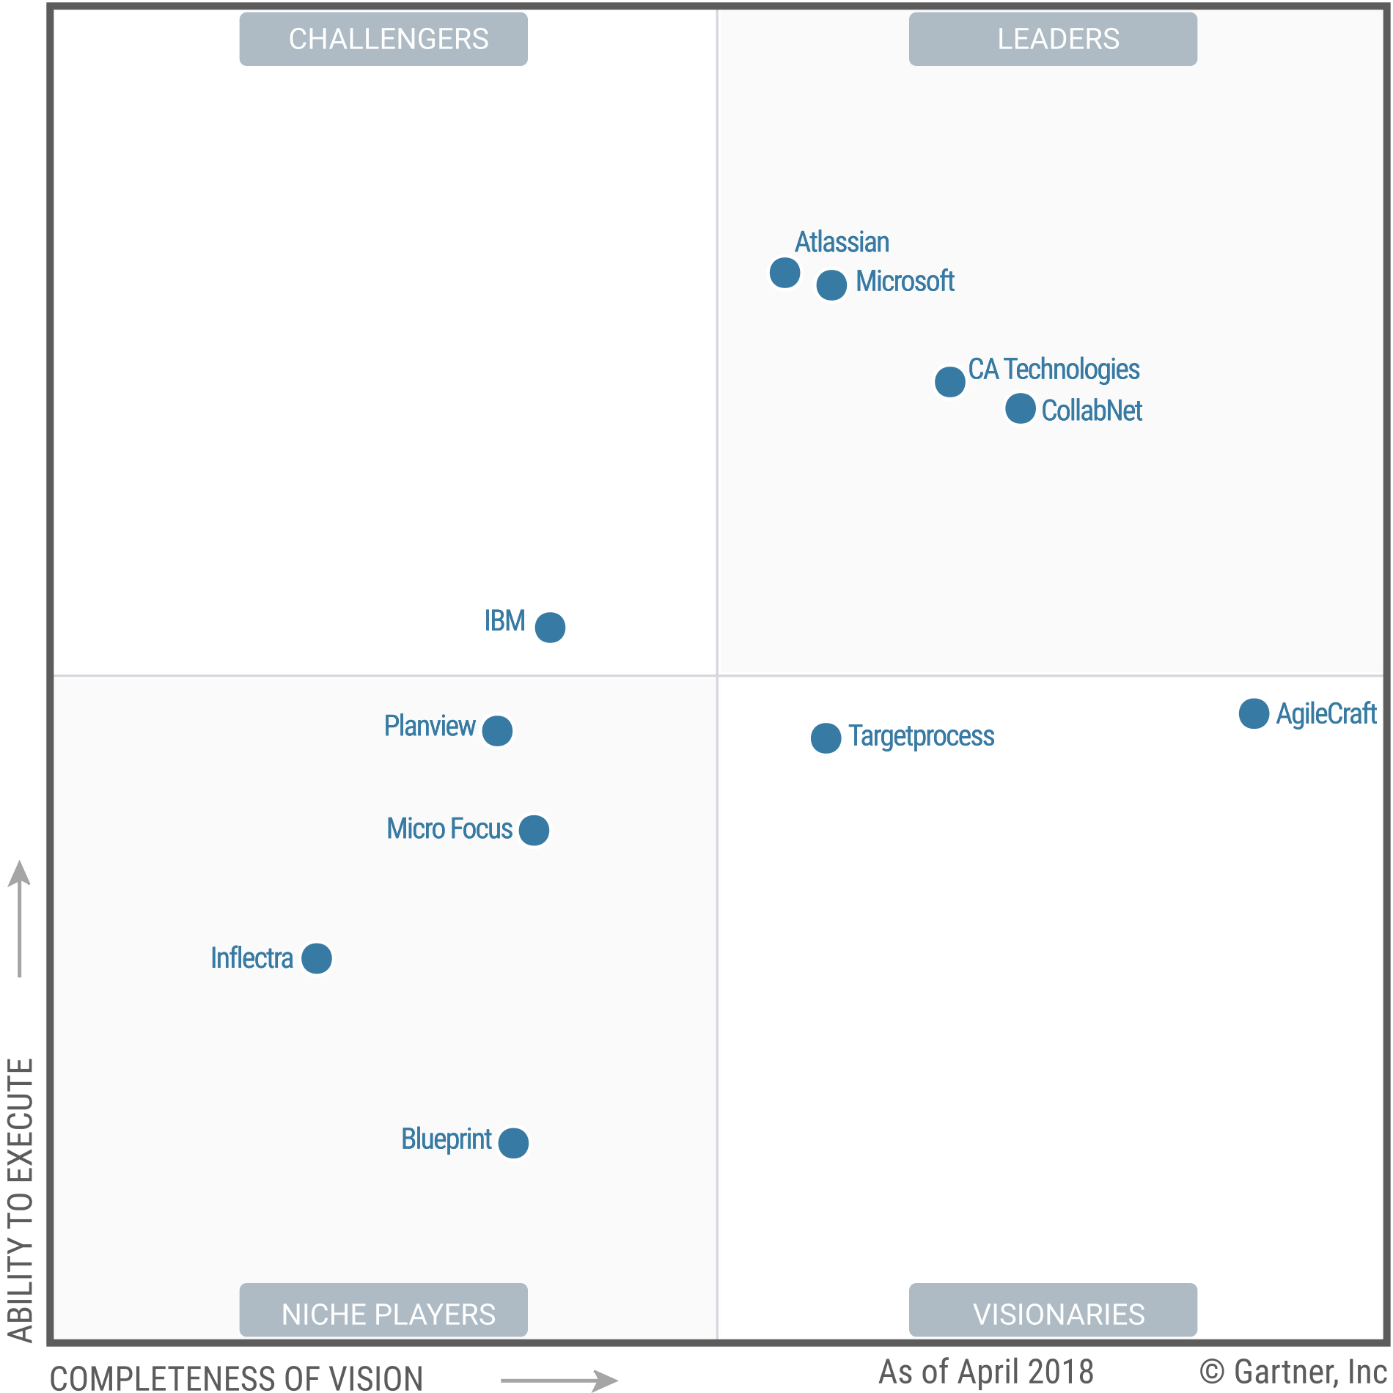 atlassian a leader in gartner s magic quadrant